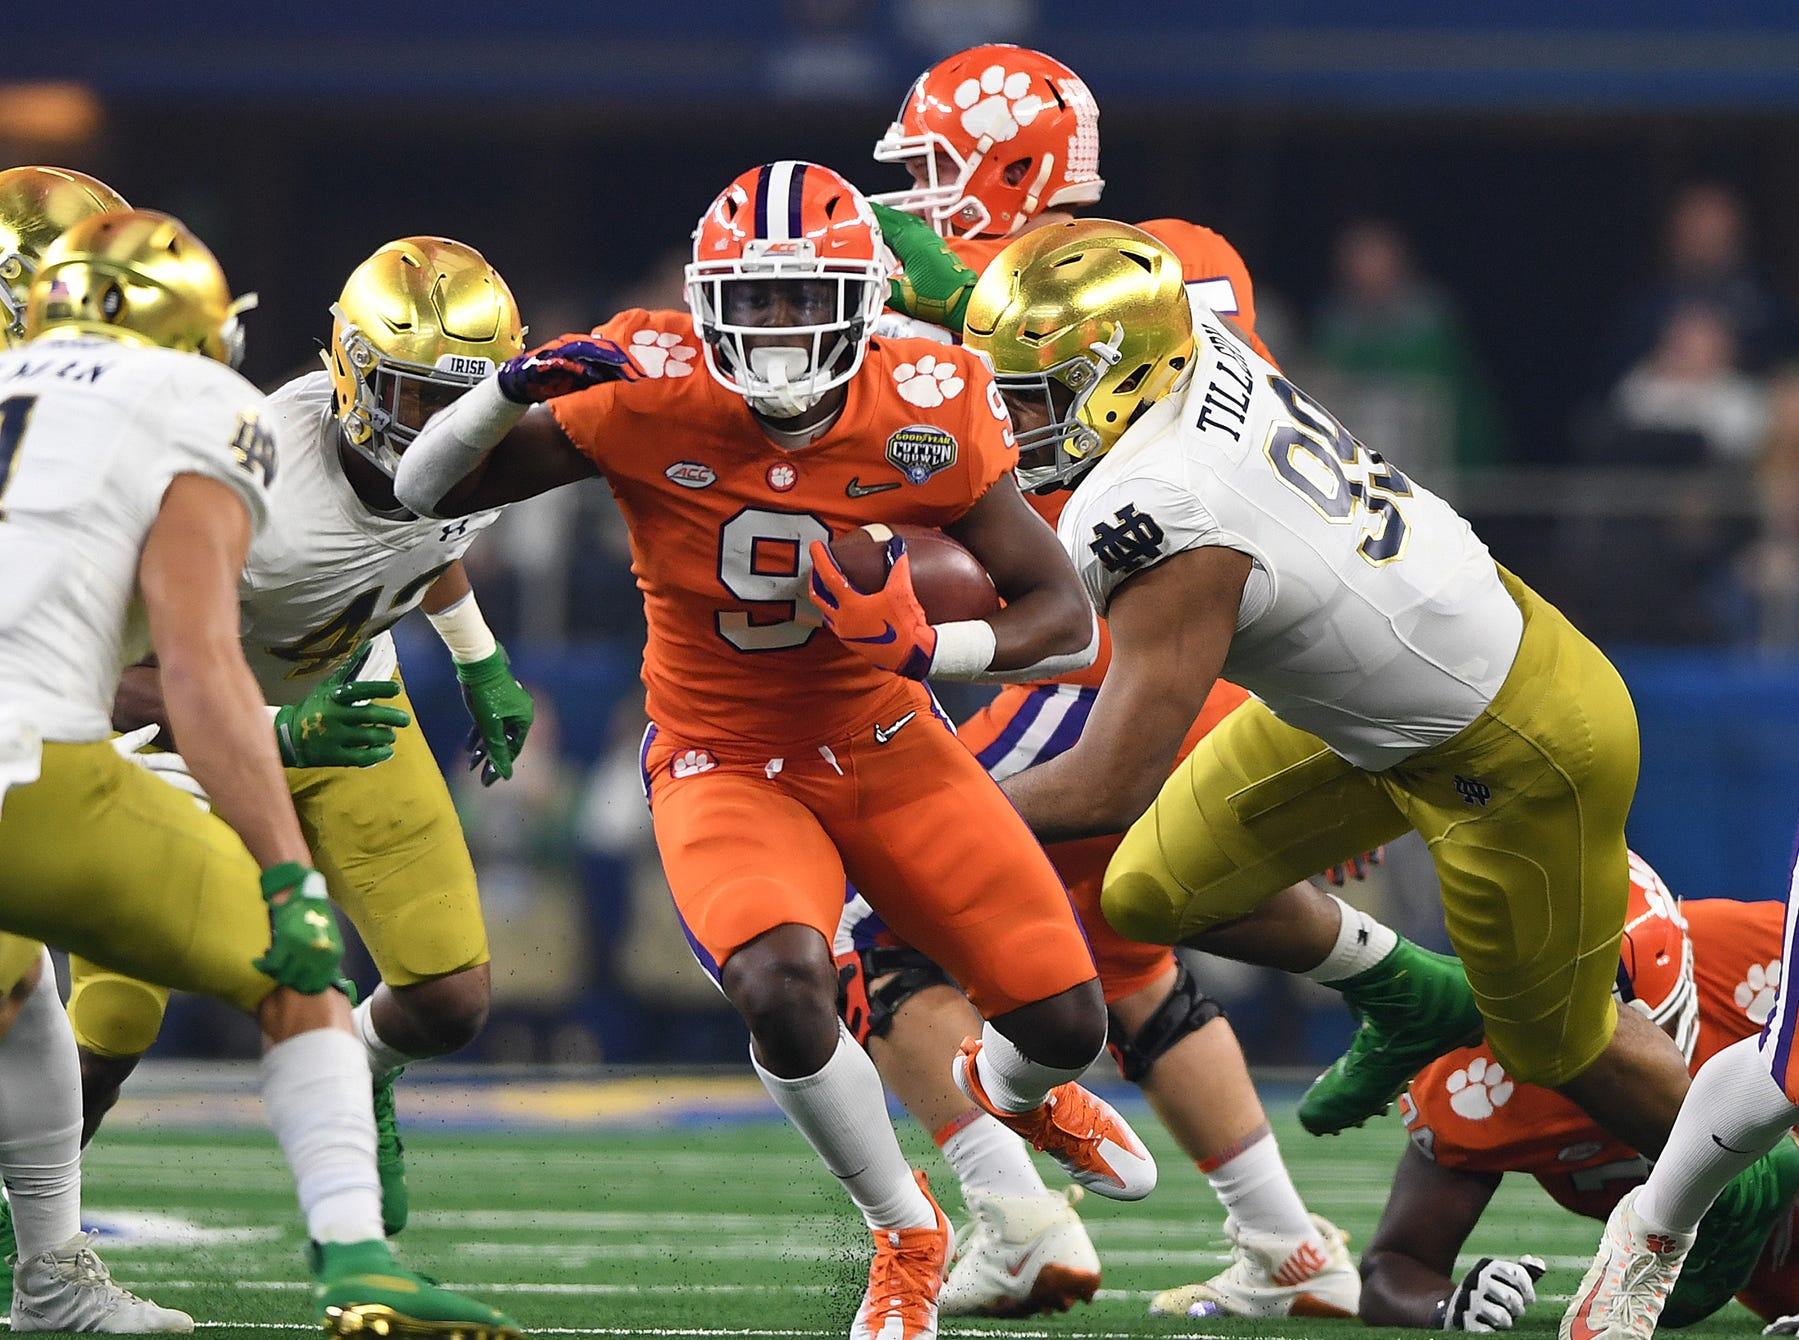 Clemson running back Travis Etienne (9) carries against Notre Dame during the 1st quarter of the Goodyear Cotton Bowl at AT&T stadium in Arlington, TX Saturday, December 29, 2018.